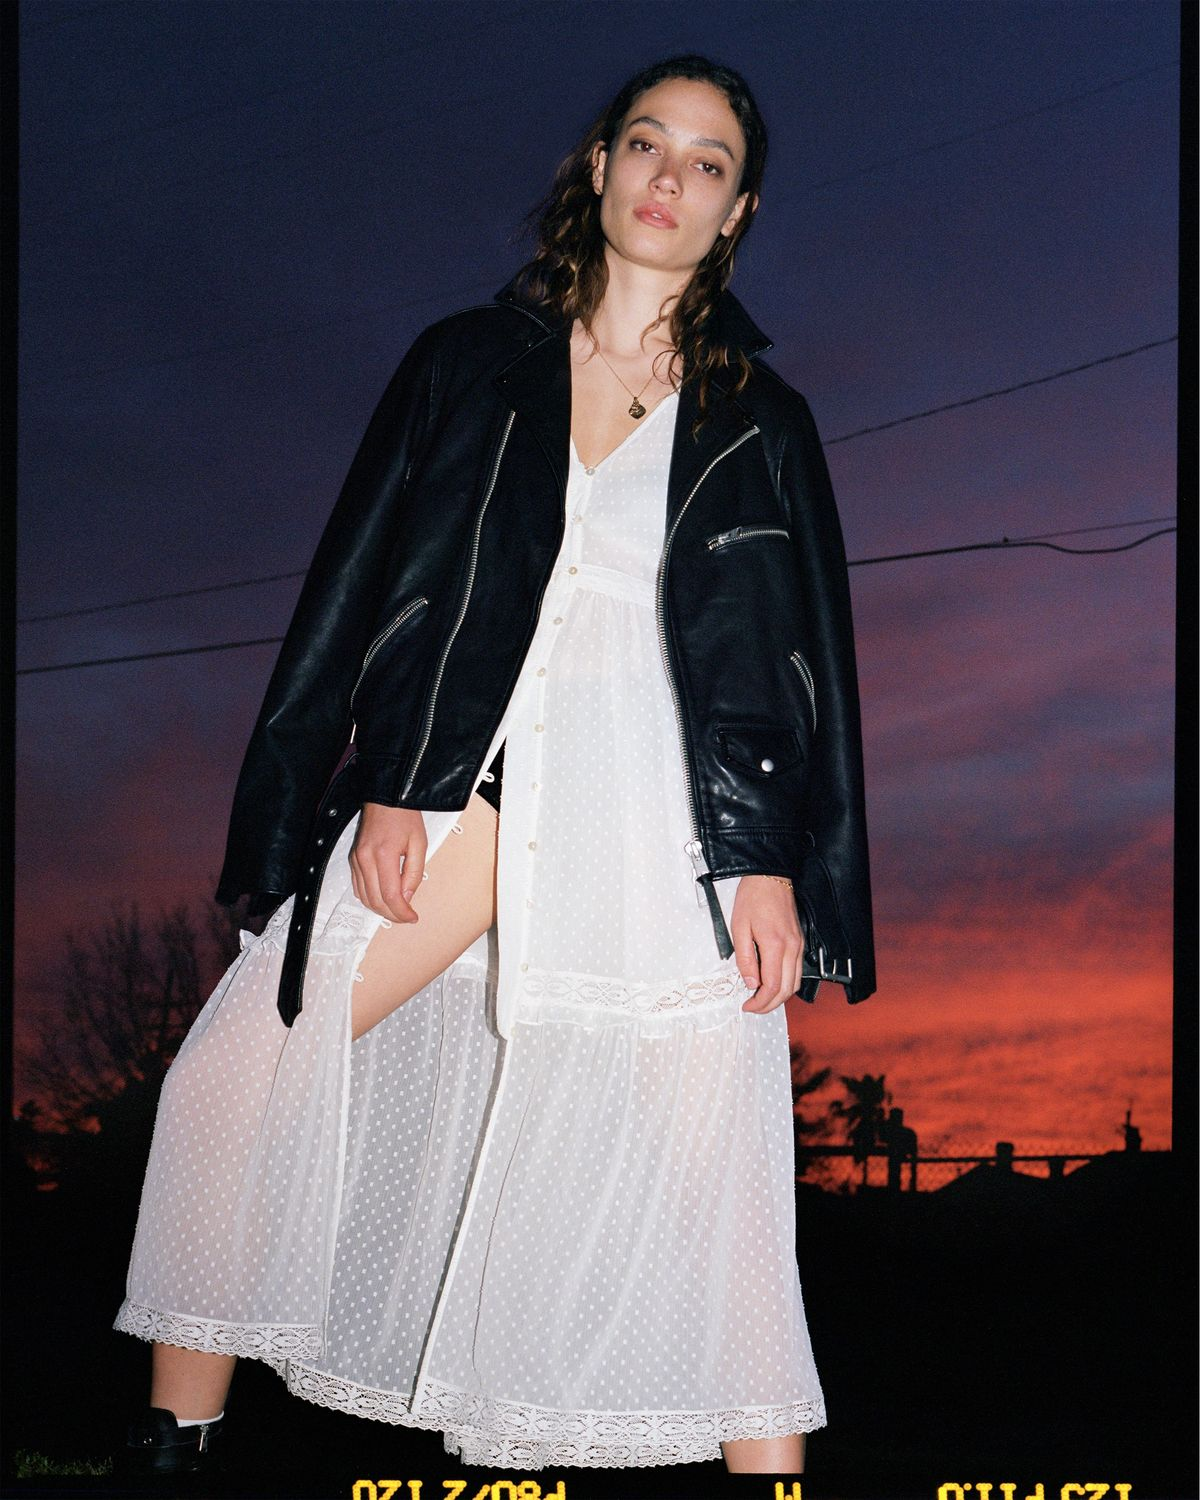 A photograph of a young woman posing in front of a vibrant sunset, wearing a long white dotted dress and a black leather jacket from our latest summer collection.